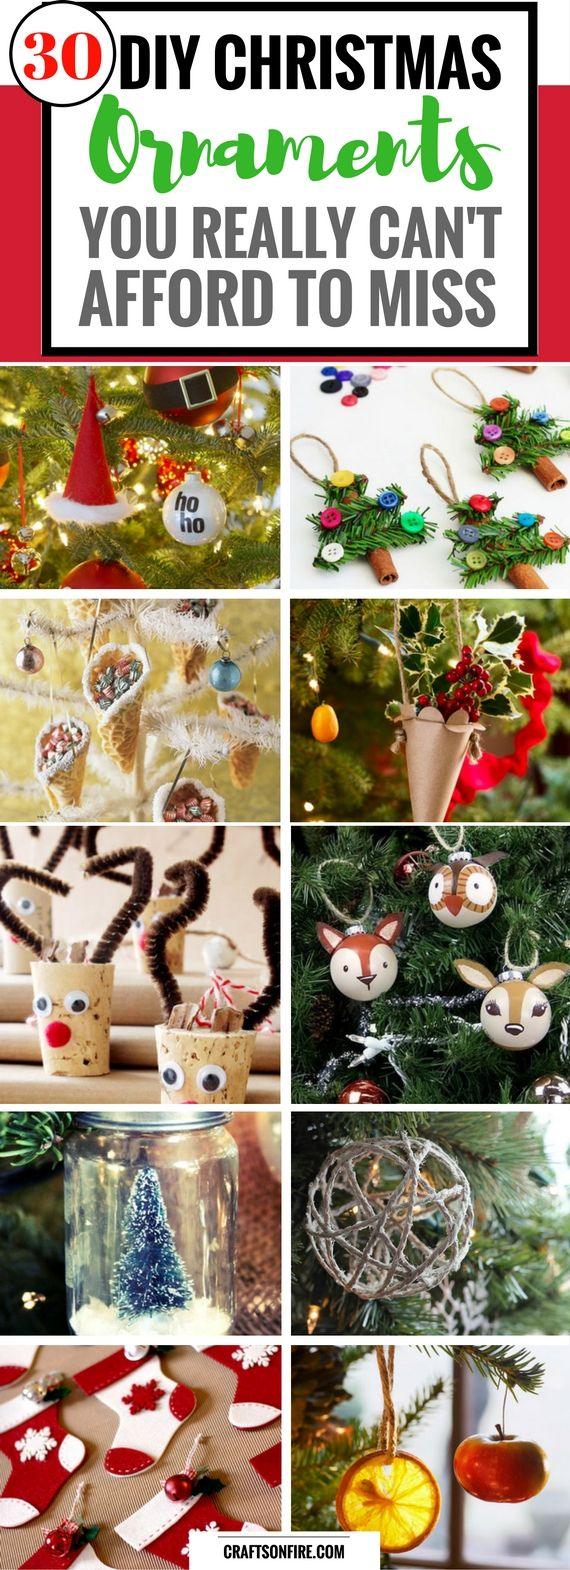 30 Best DIY Christmas Ornaments Anyone Can Make - Craftsonfire